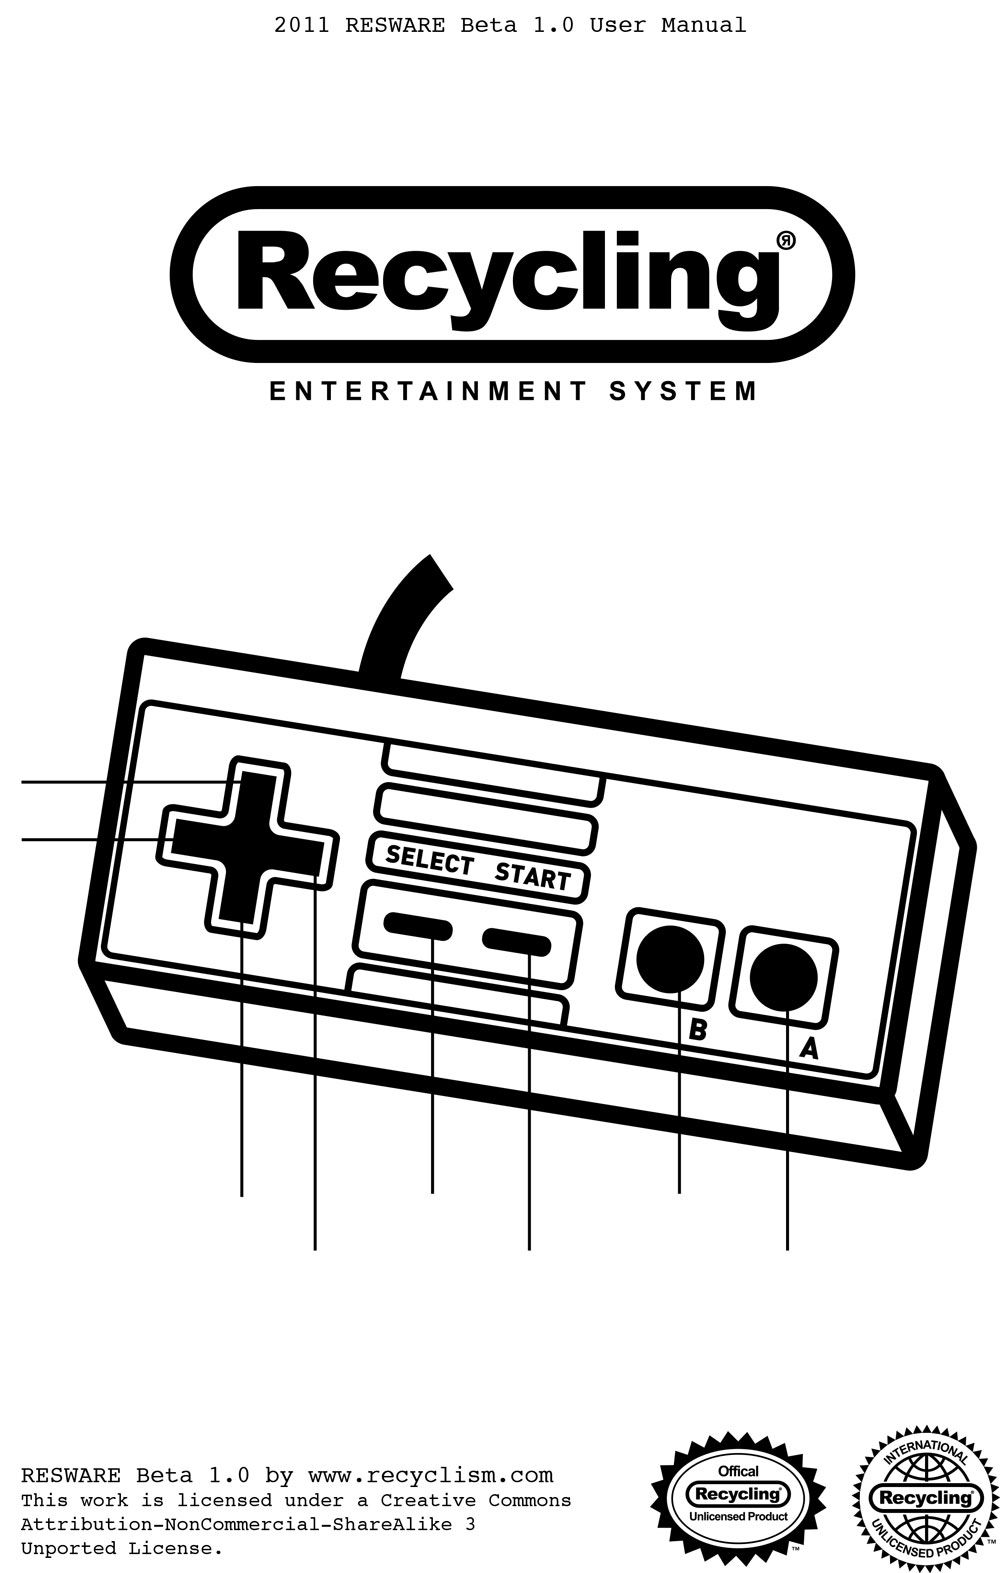 Recyclism The Recycling Entertainment System Mini